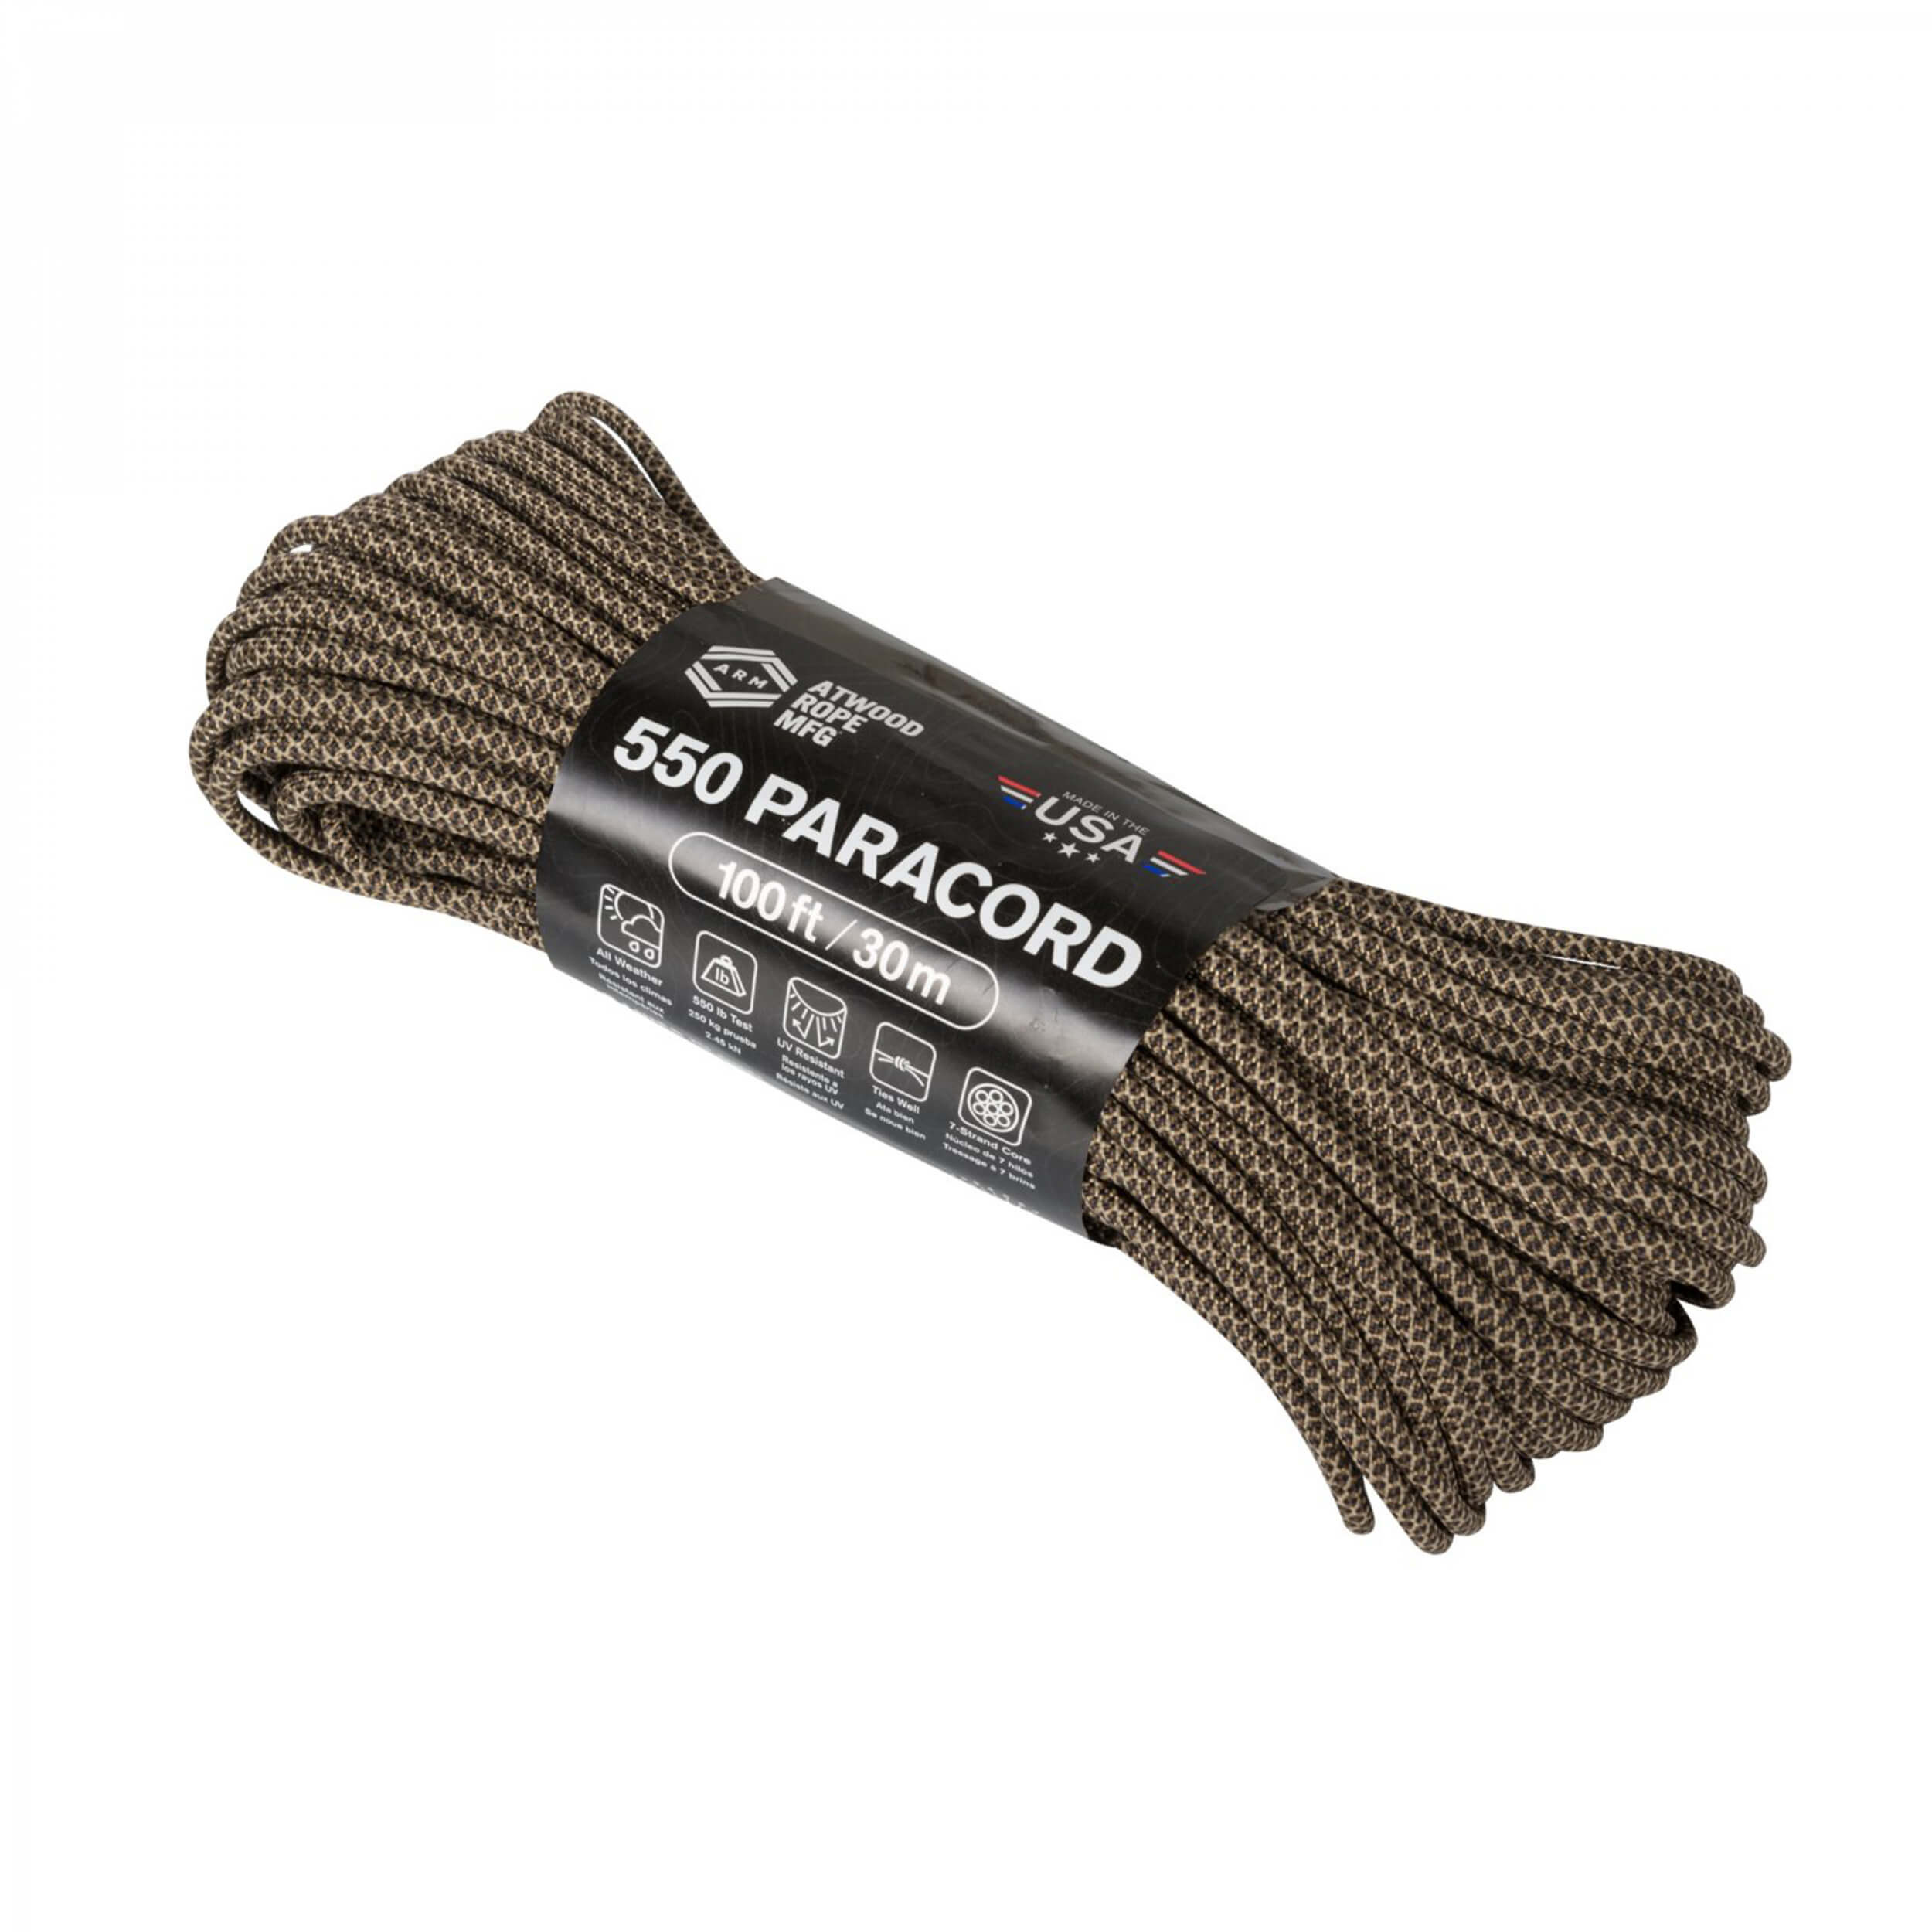 Helikon-Tex 550 Paracord (110FT) hyena